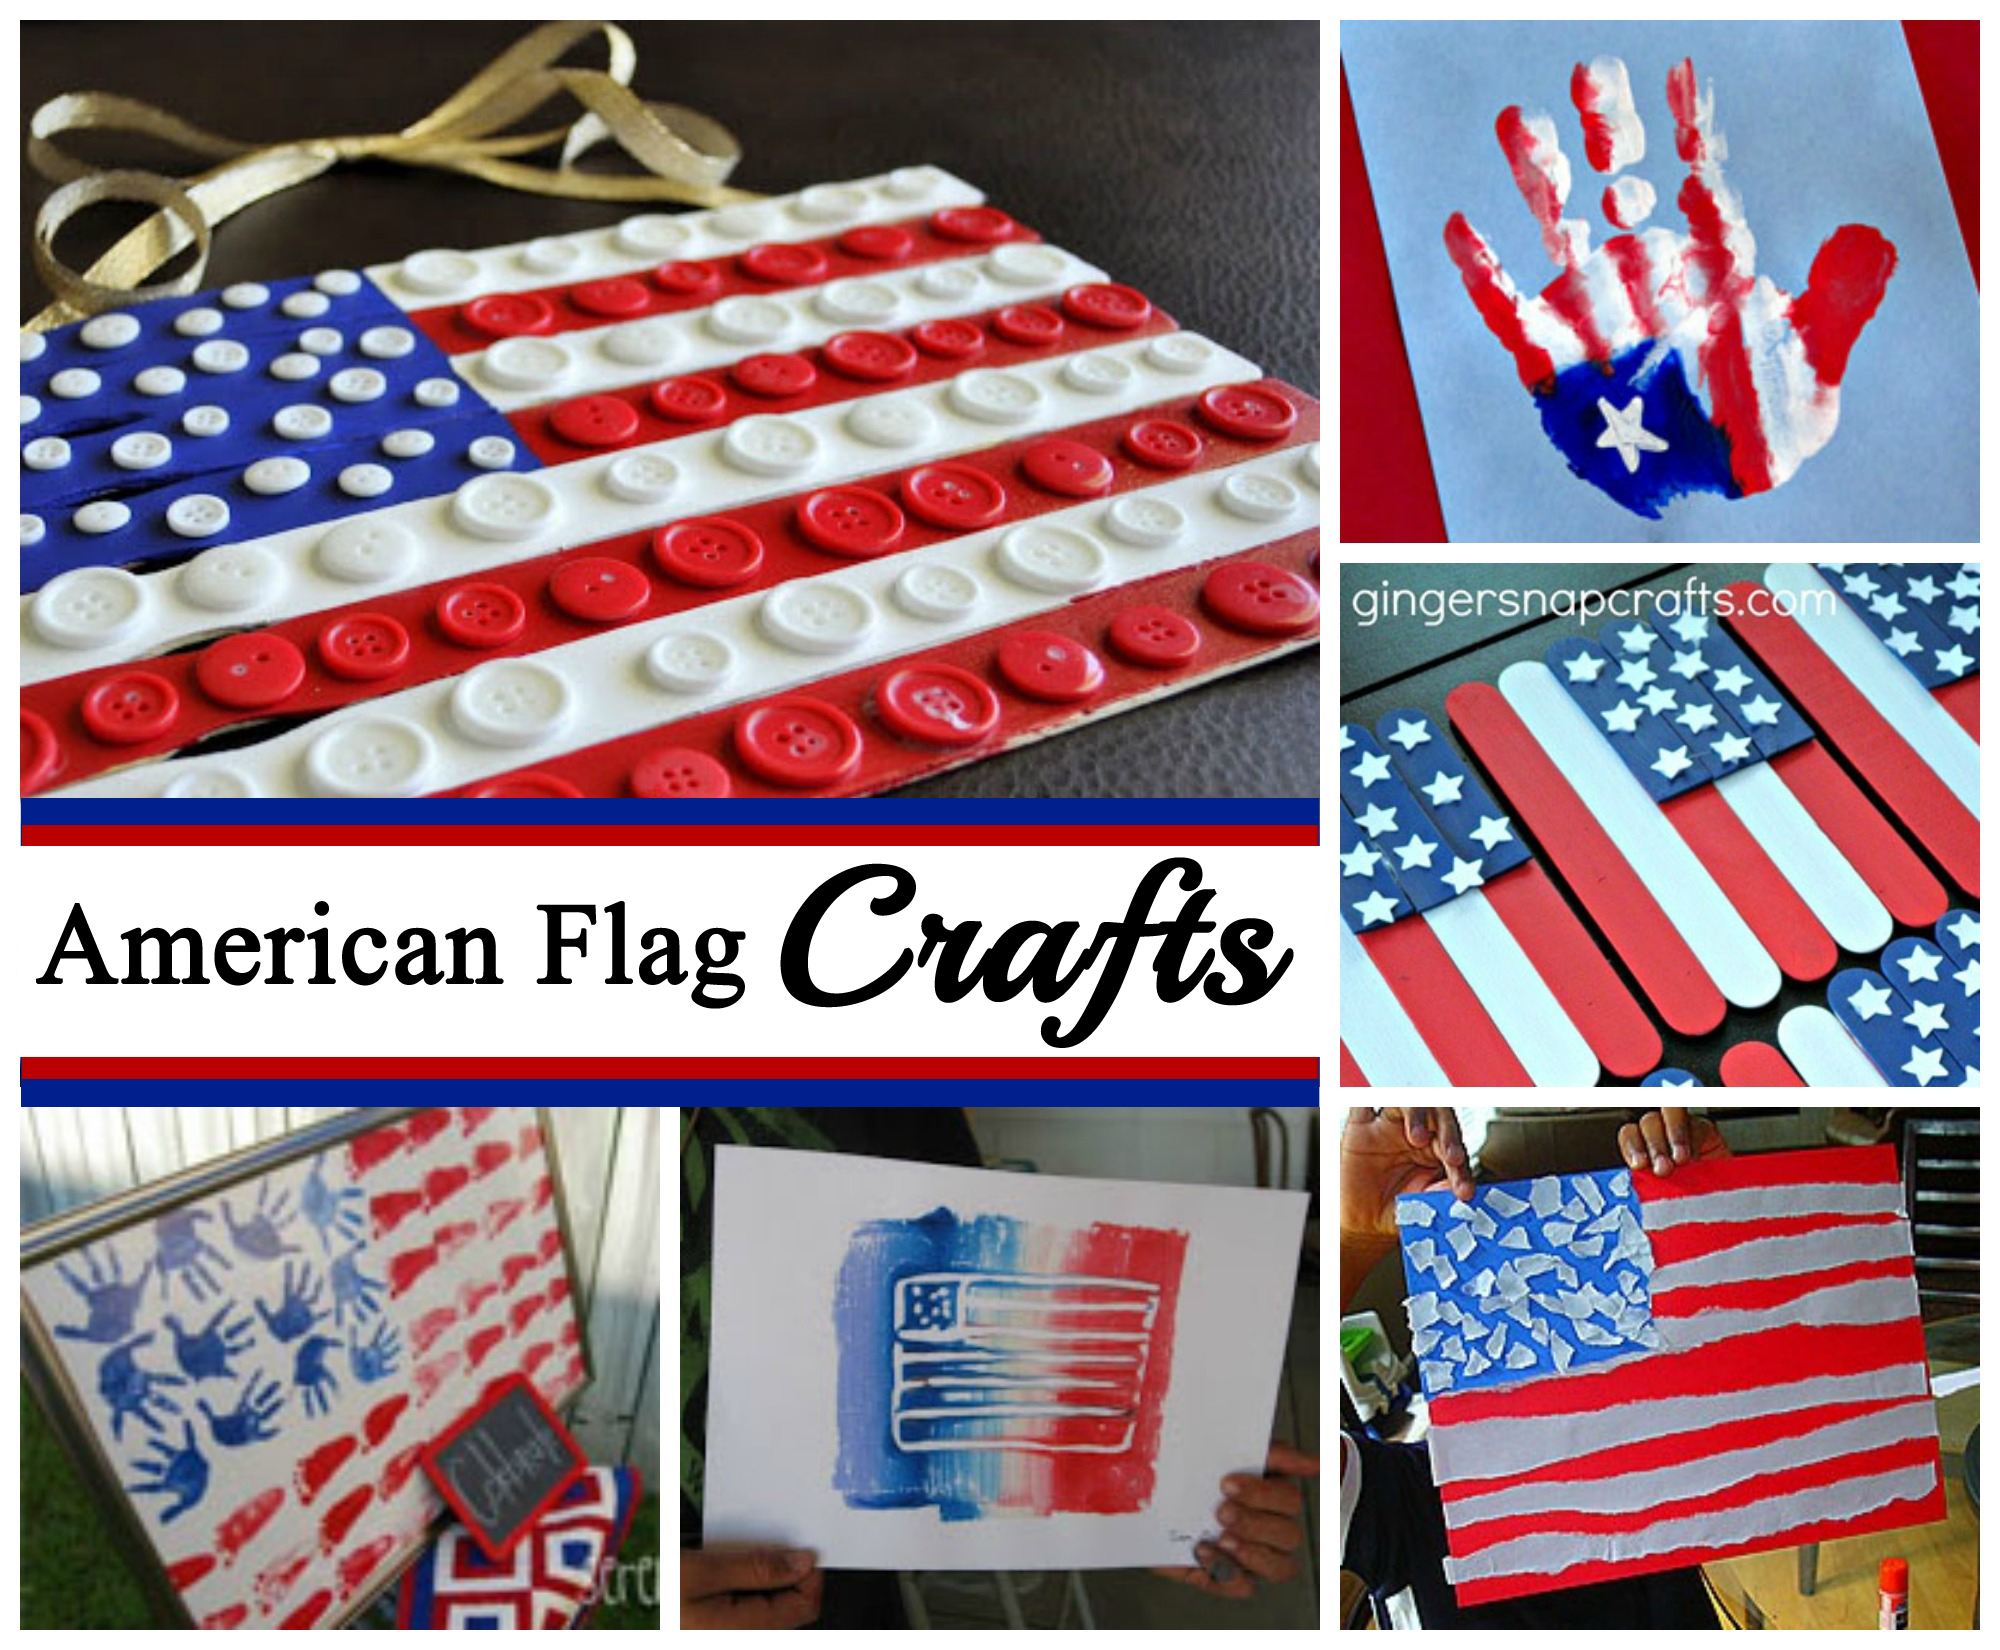 American Flag Crafts for July 4th